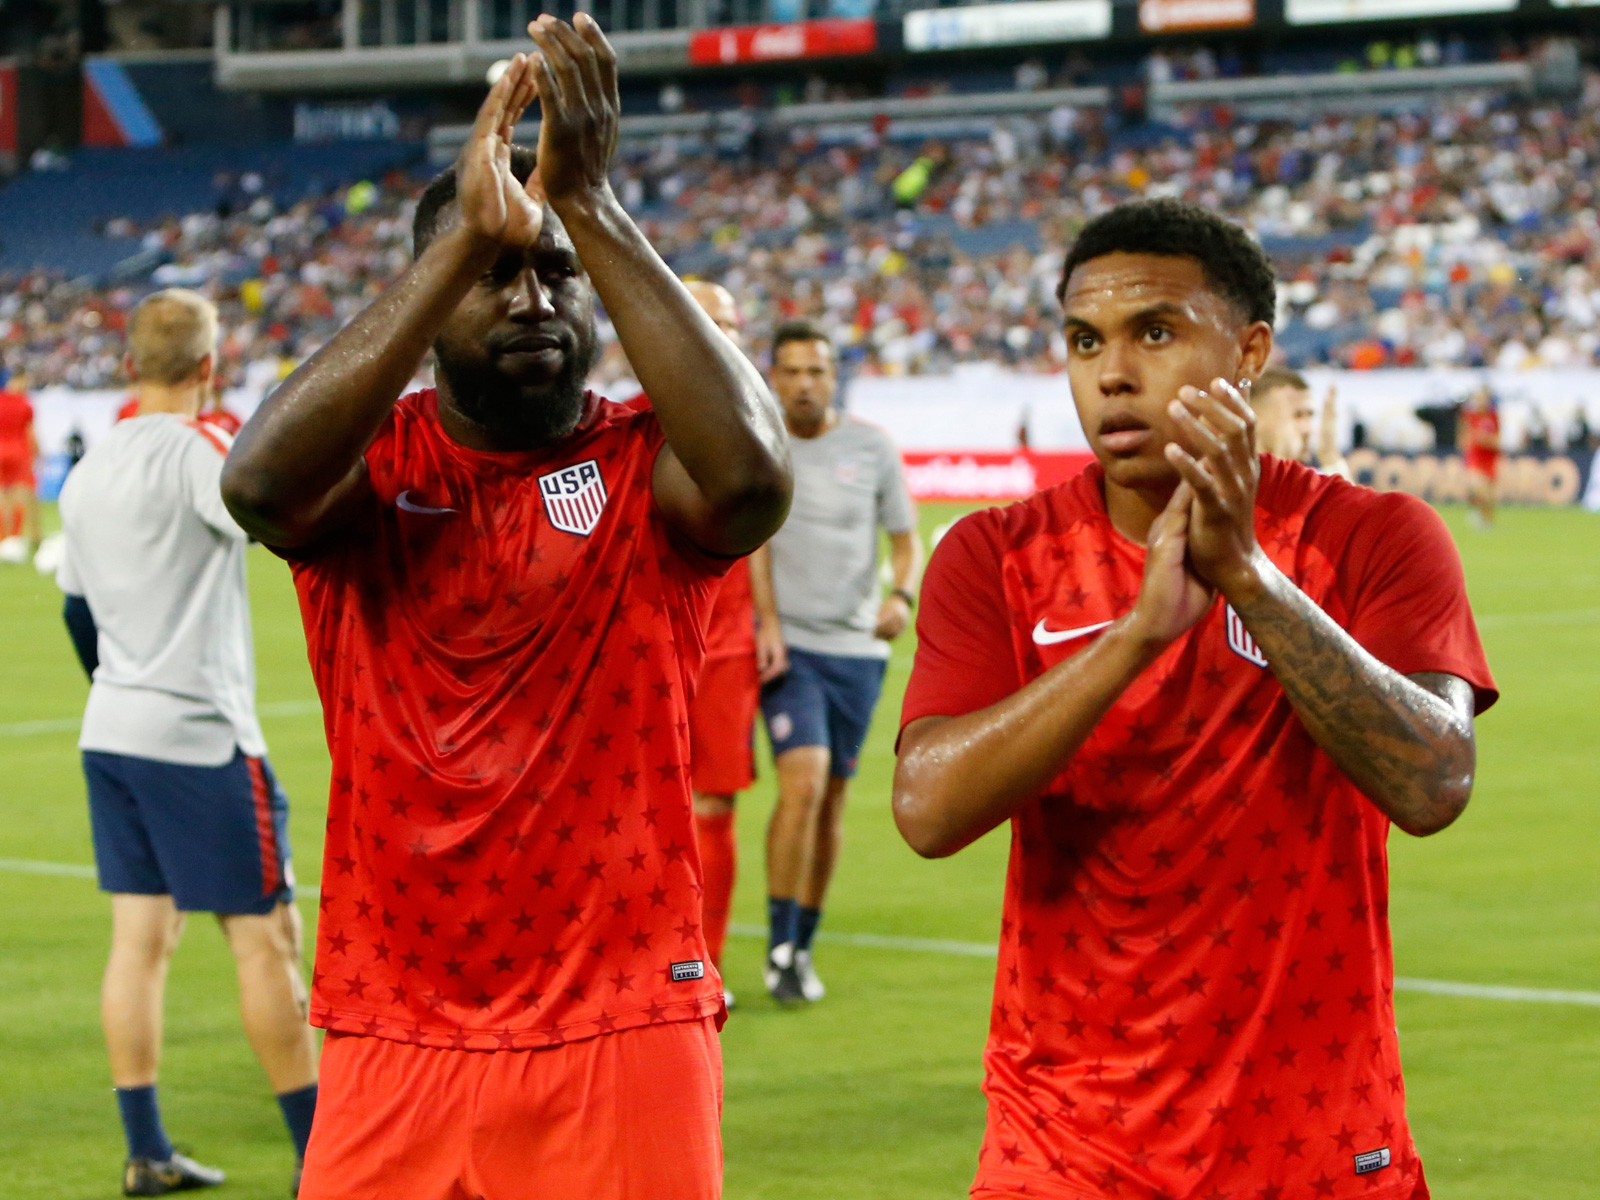 Jozy Altidore and Weston McKennie star for the USA in the Gold Cup vs. Jamaica